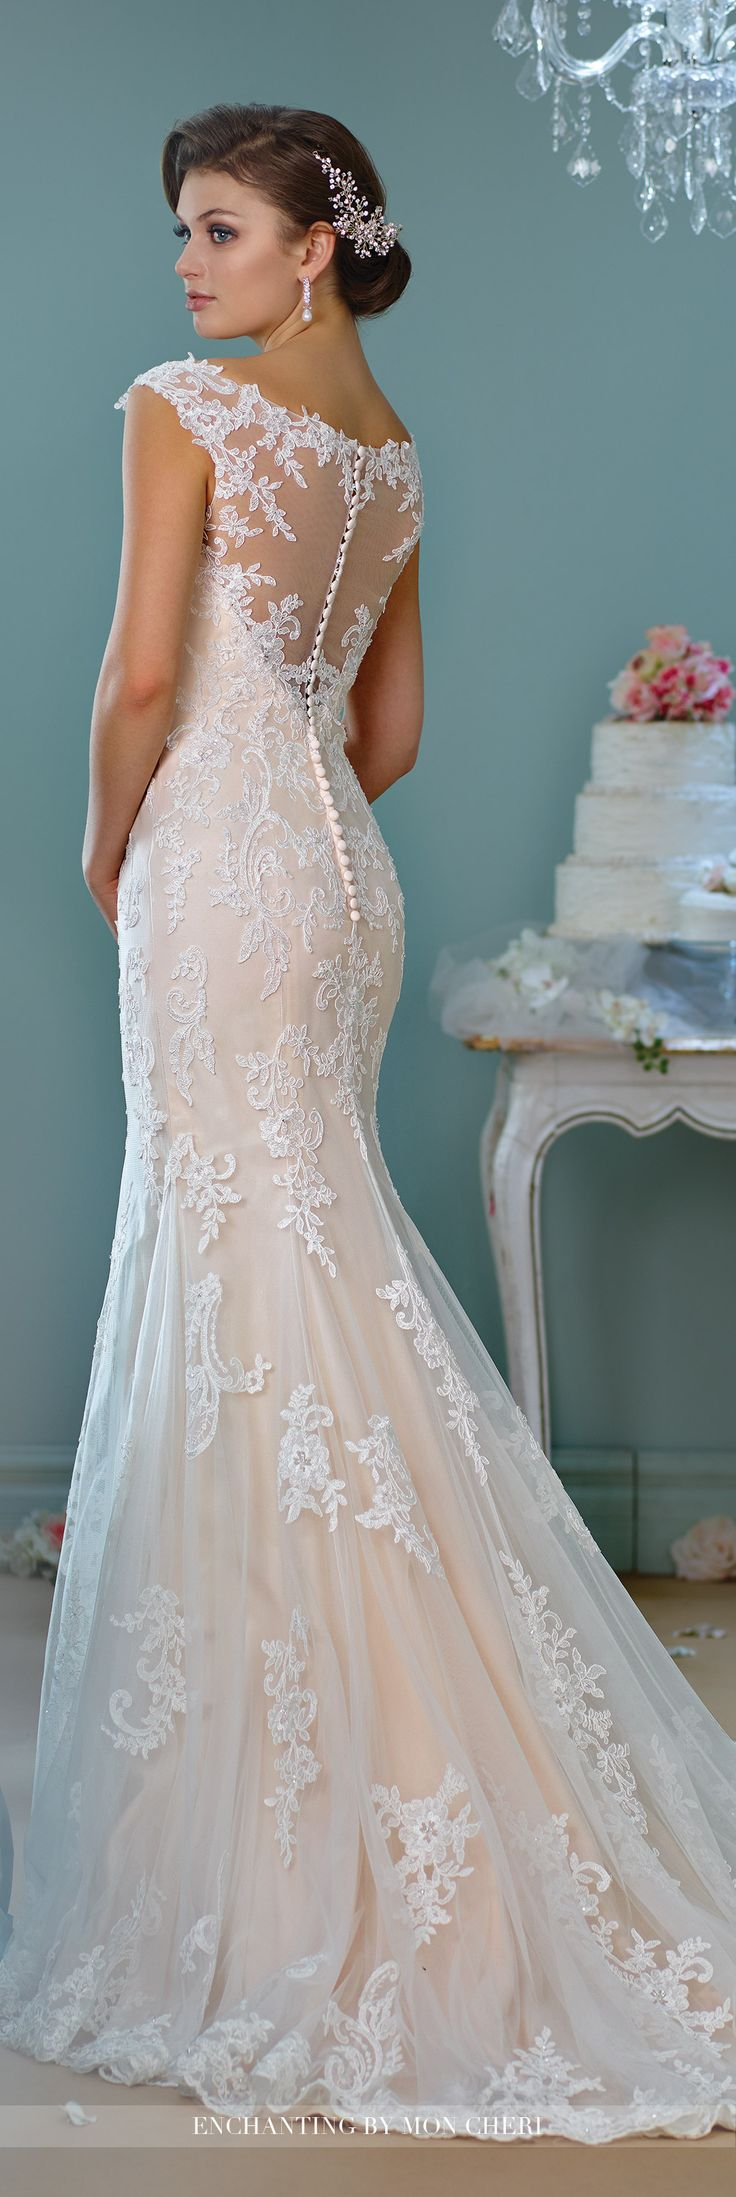 17 Best ideas about Wedding Gown Lace on Pinterest | Lace wedding ...